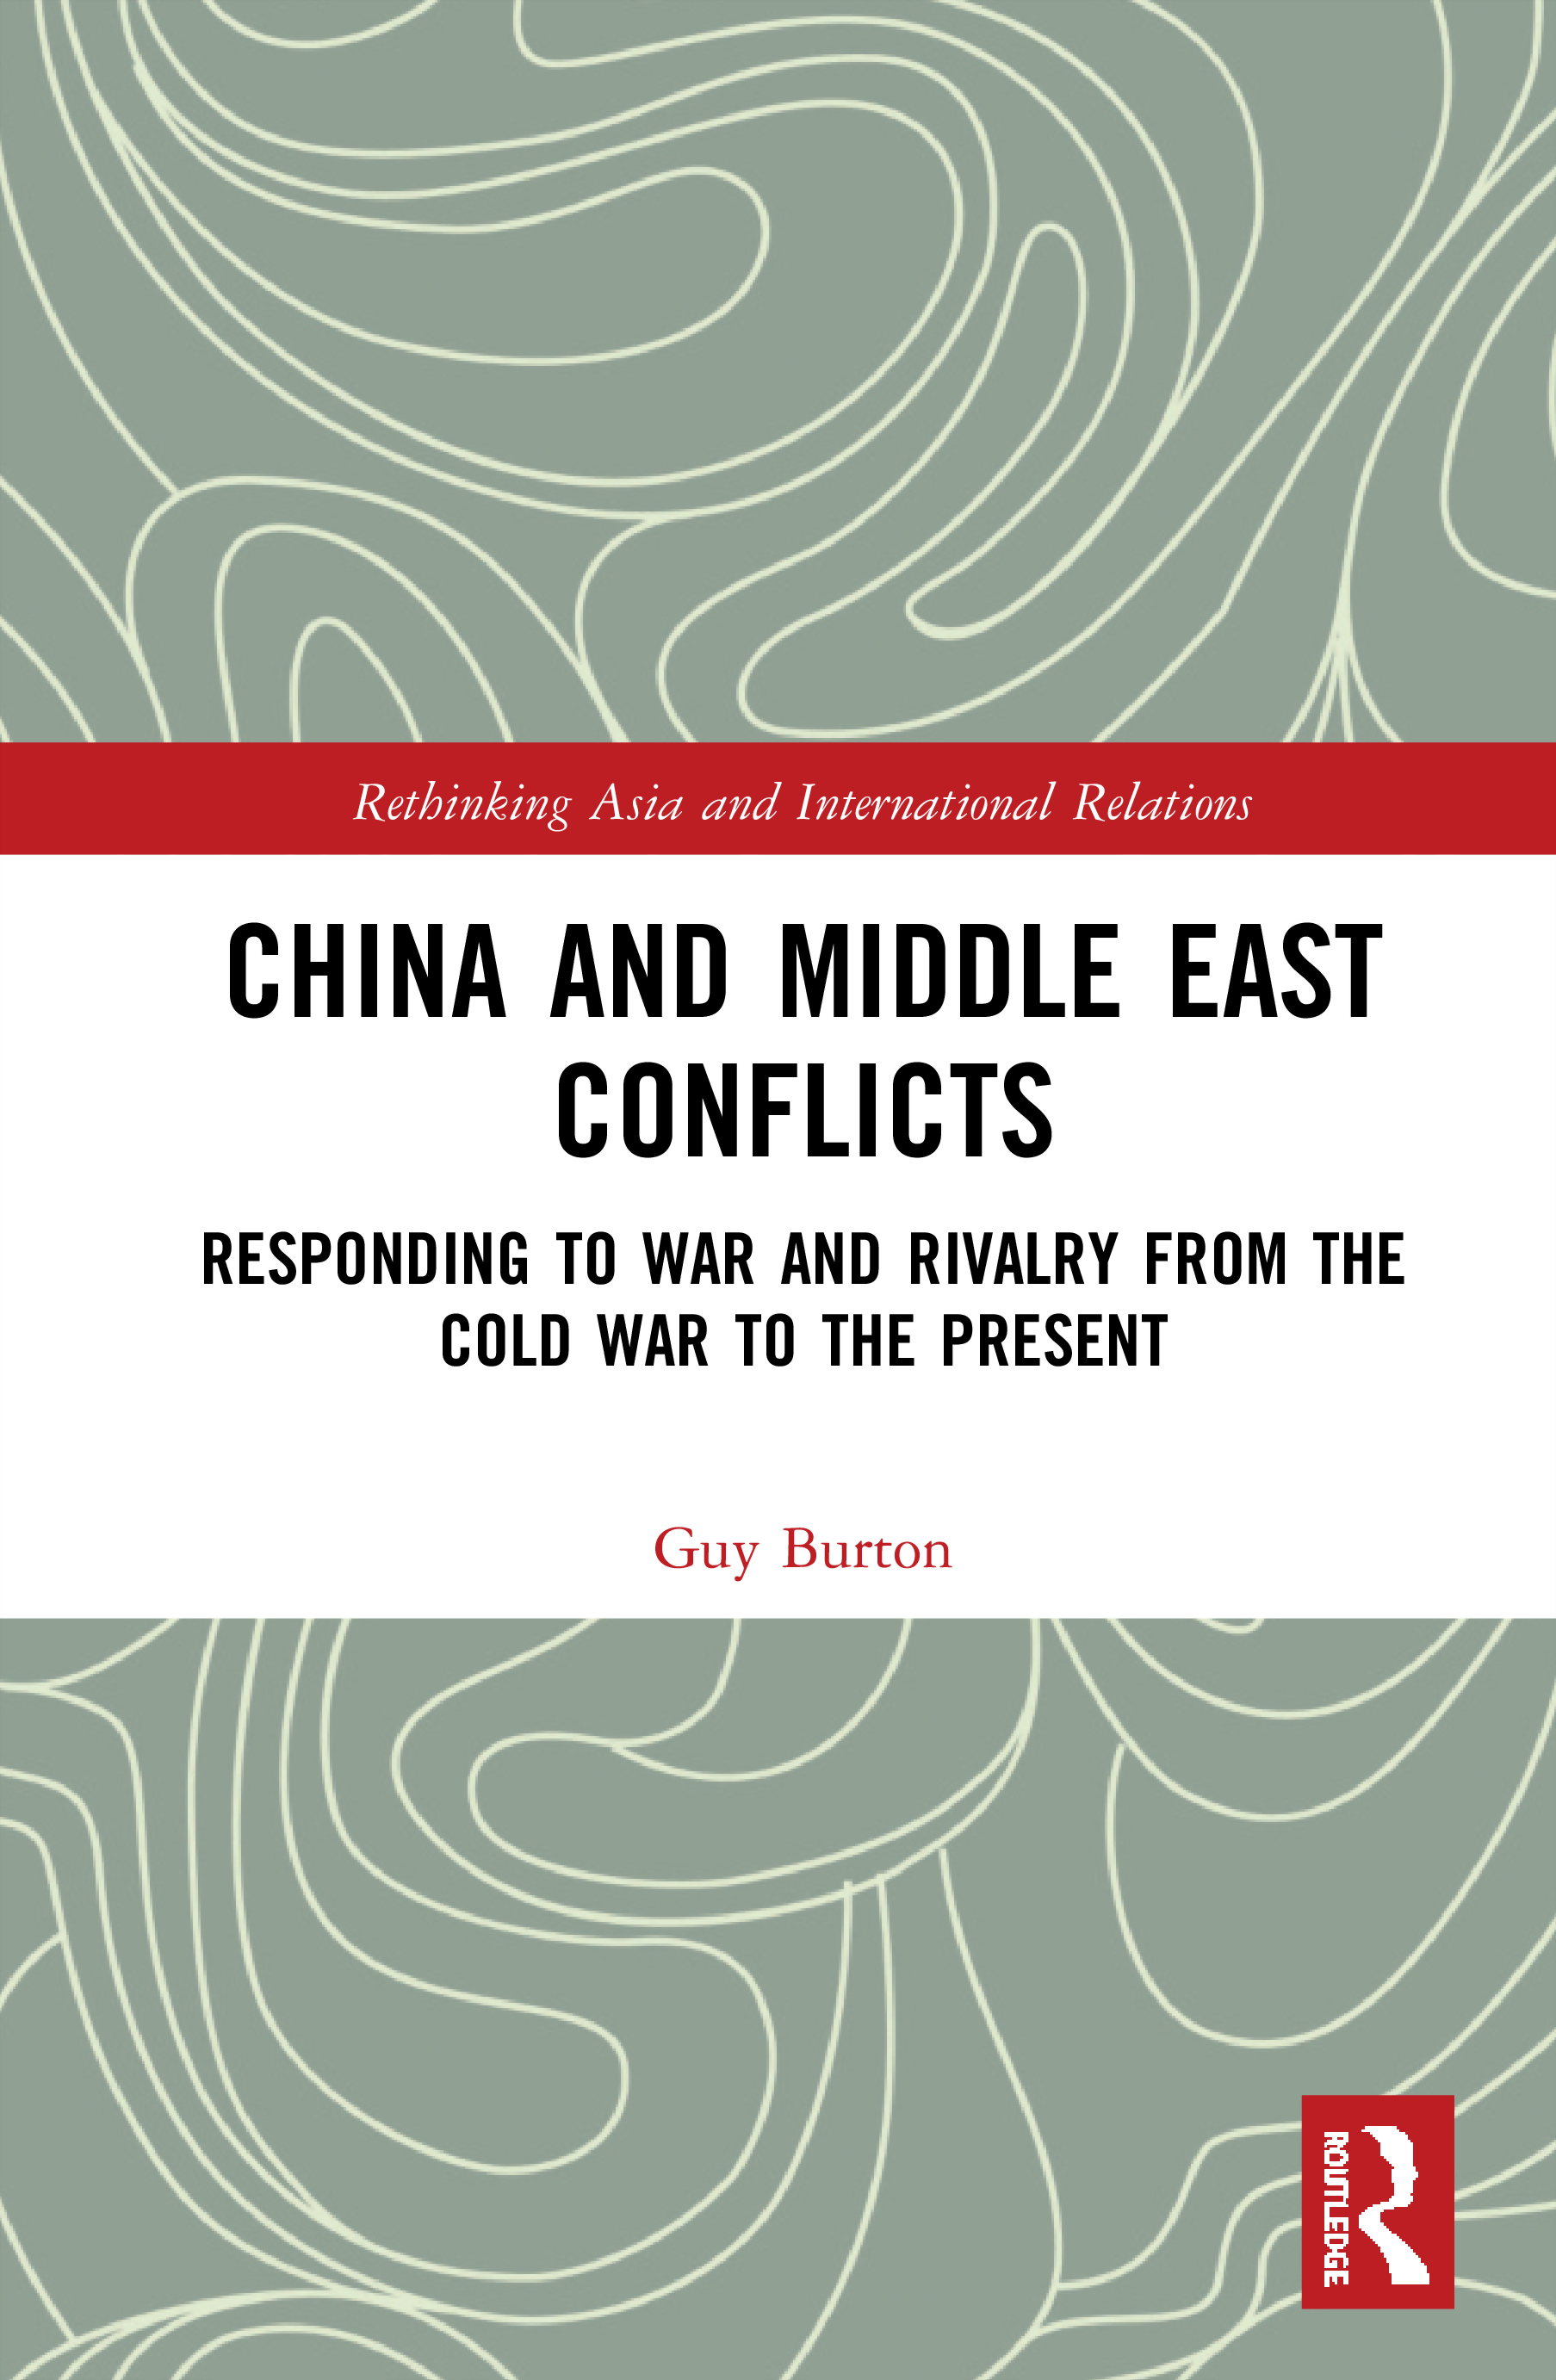 China and Middle East Conflicts: Responding to War and Rivalry from the Cold War to the Present book cover